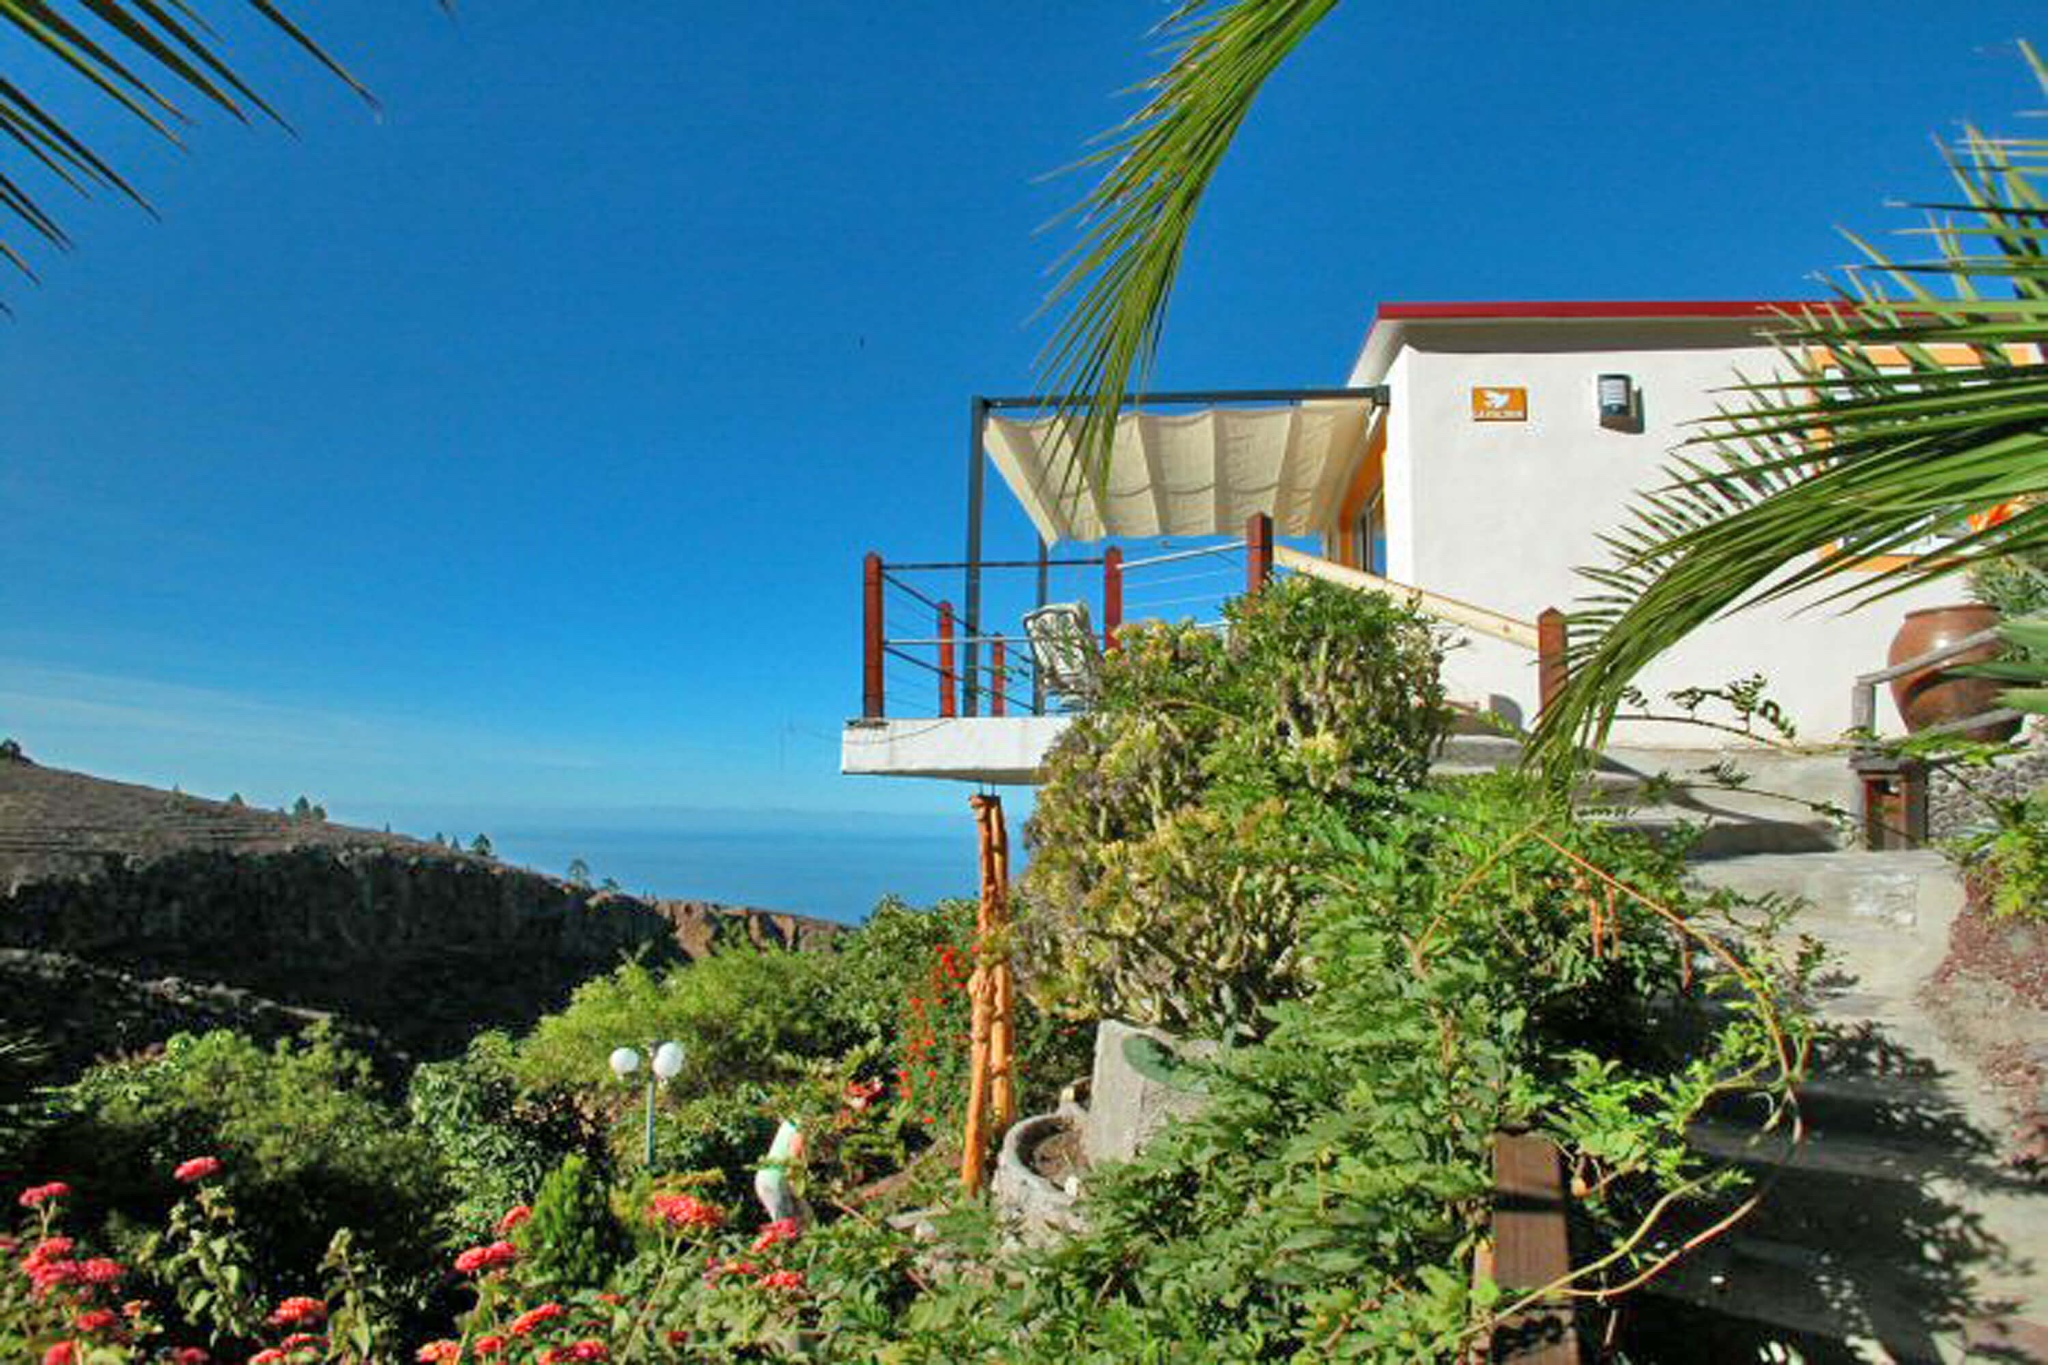 Beautiful holiday home on a finca with beautiful mountain and sea views, well-kept garden and communal pool